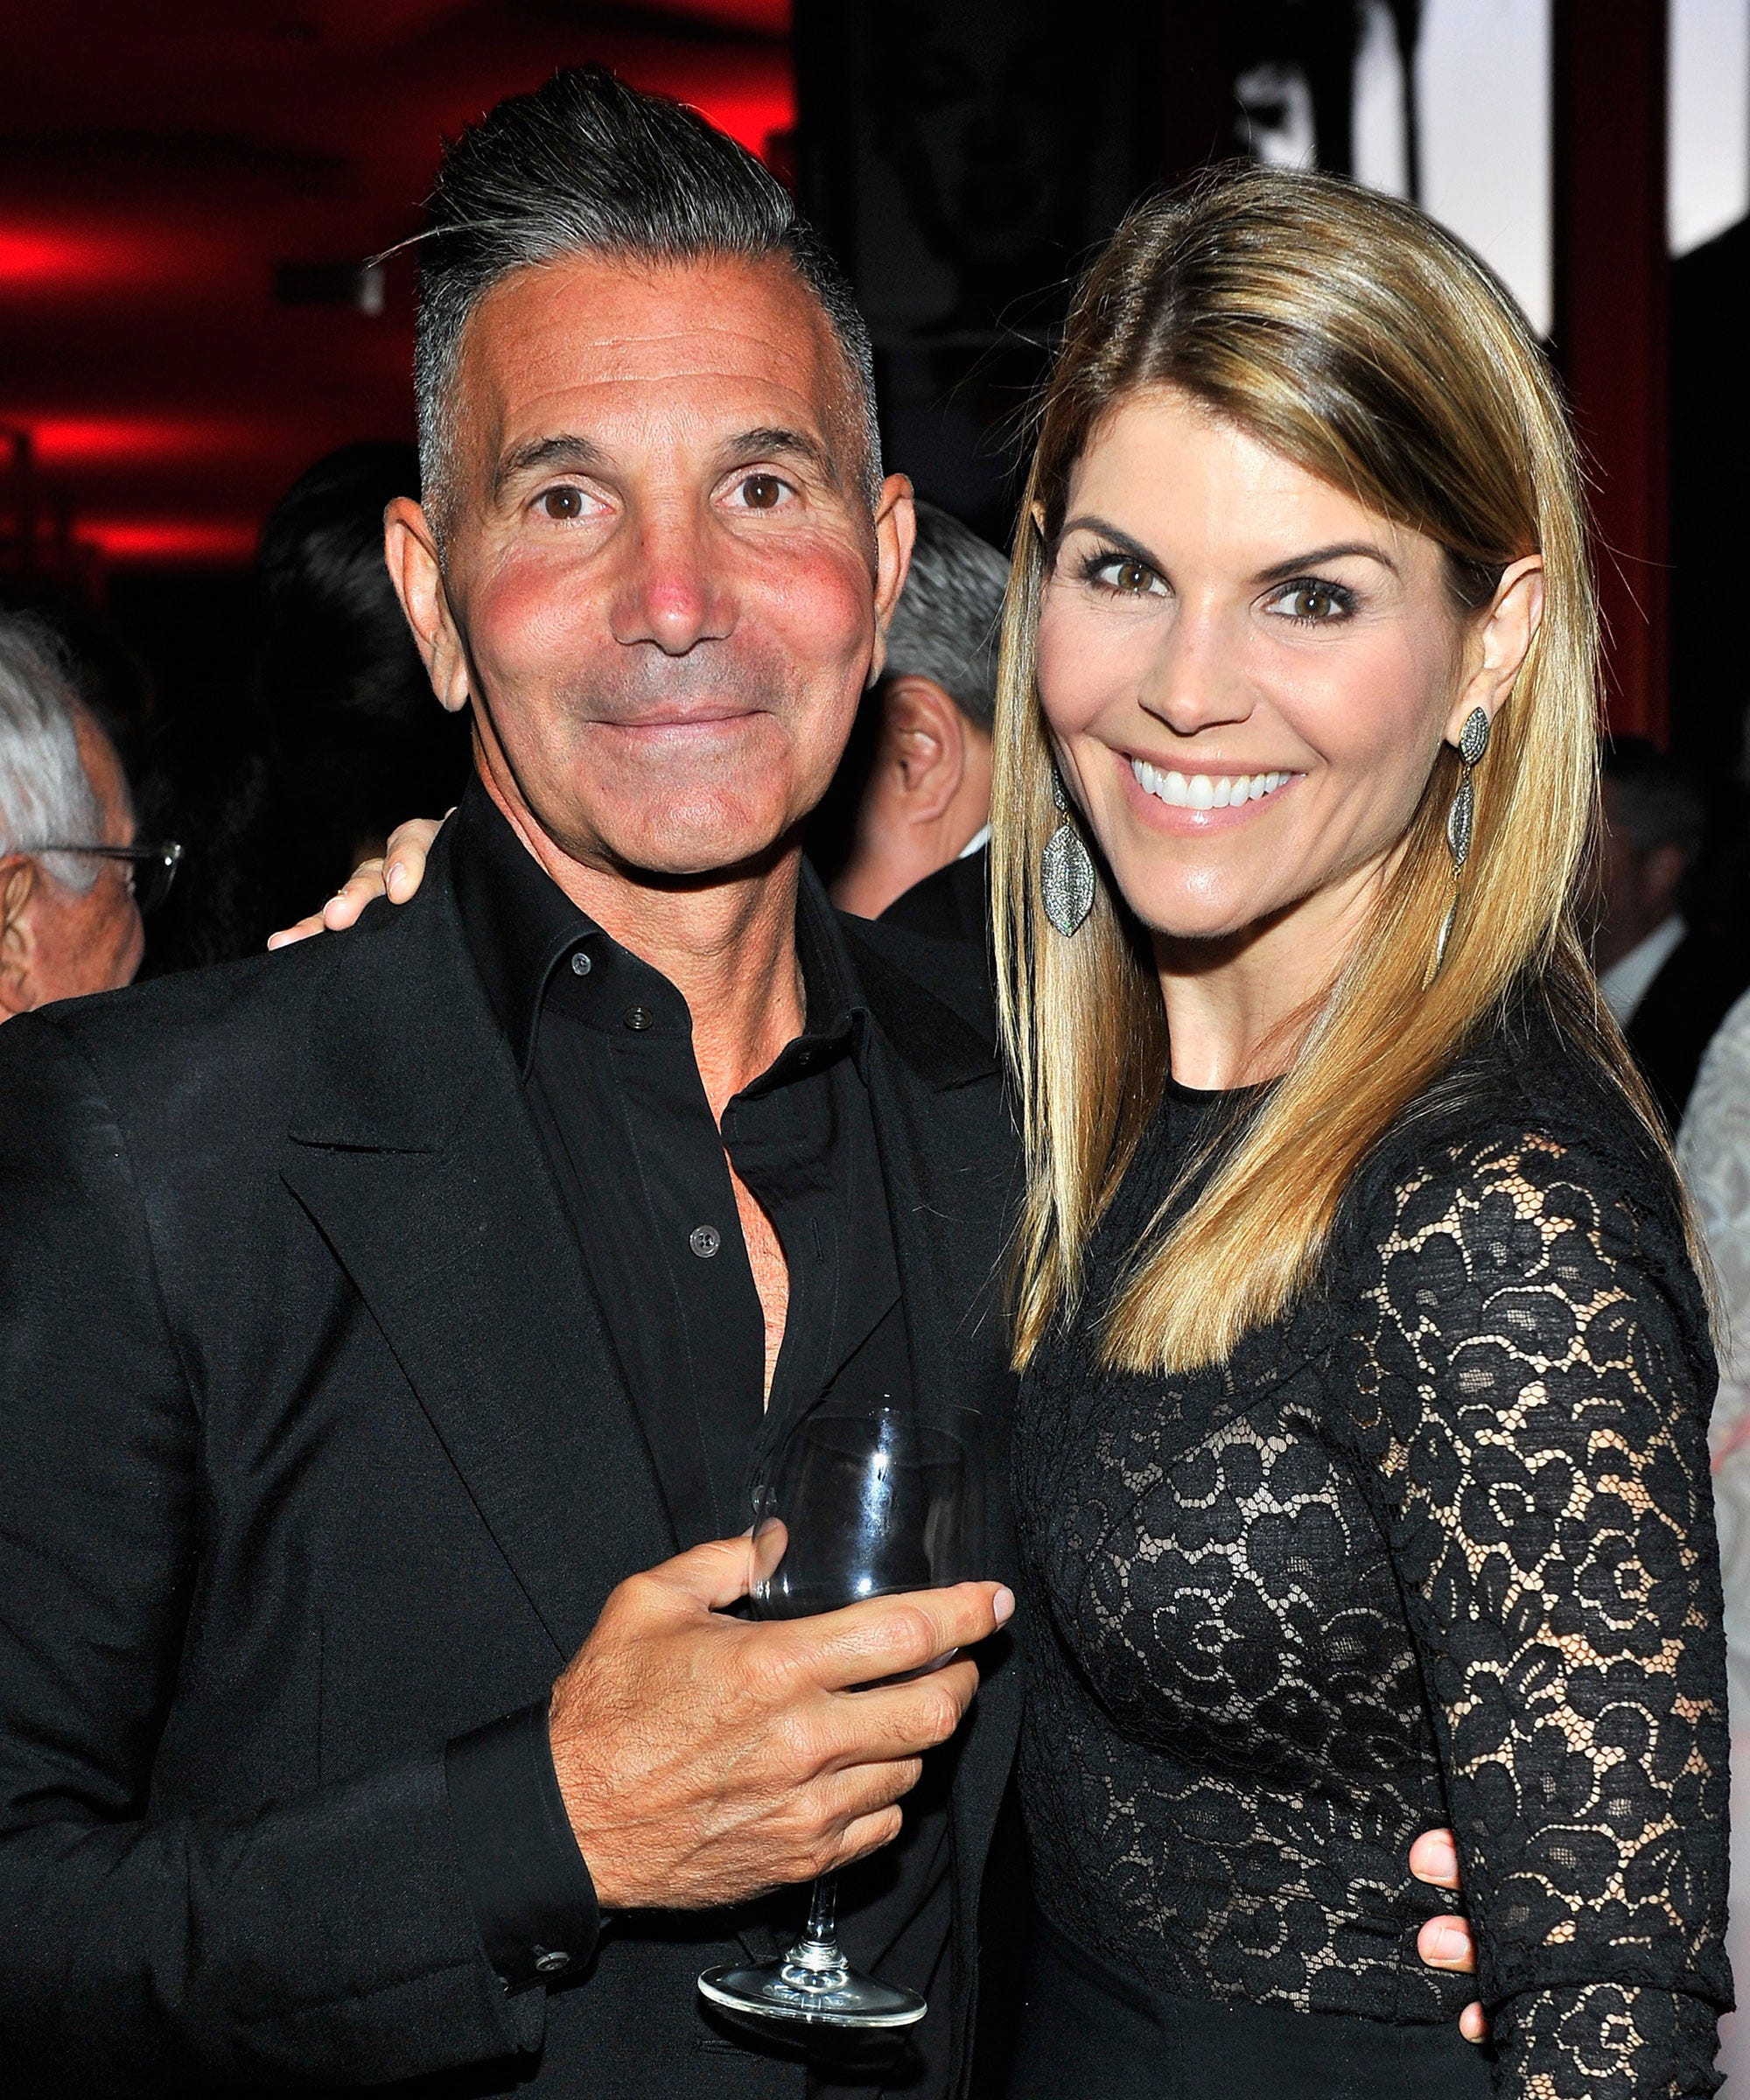 Lori Loughlin Husband Mossimo Gianulli Old College Scam